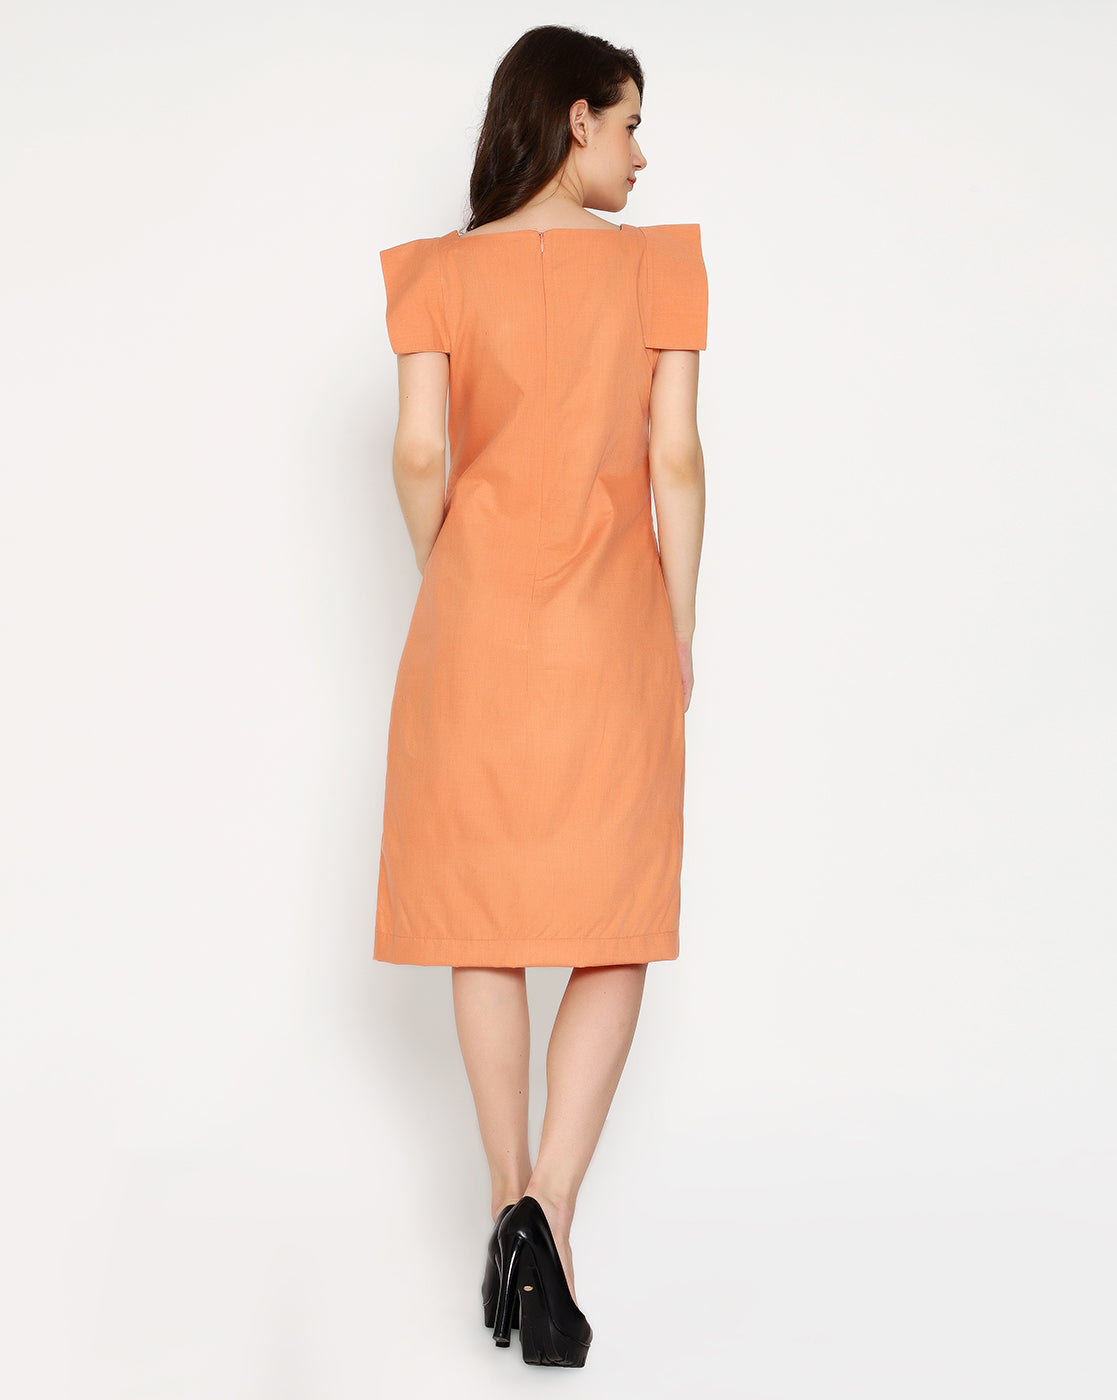 The Boss cape Sleeve Dress - Coral Orange